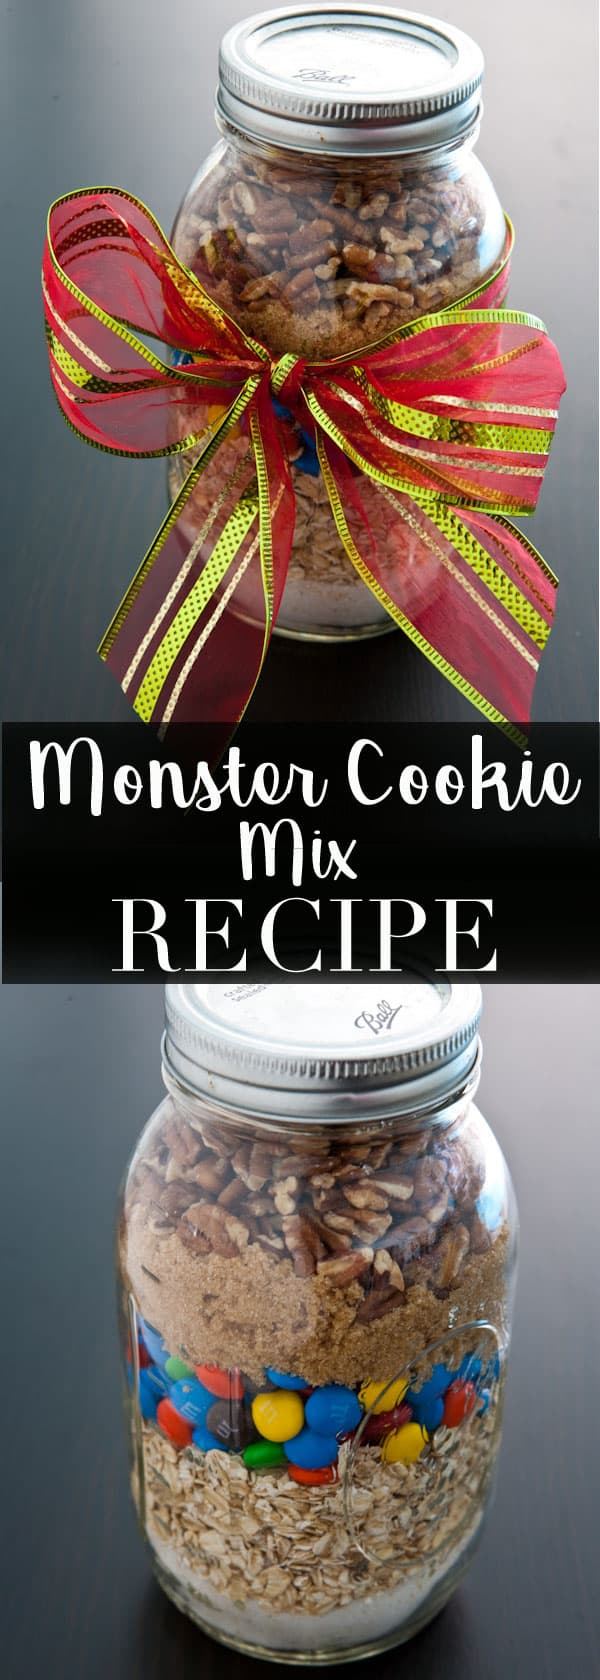 Eclectic Recipes Monster Cookie Mix In A Jar Recipe Plus Free